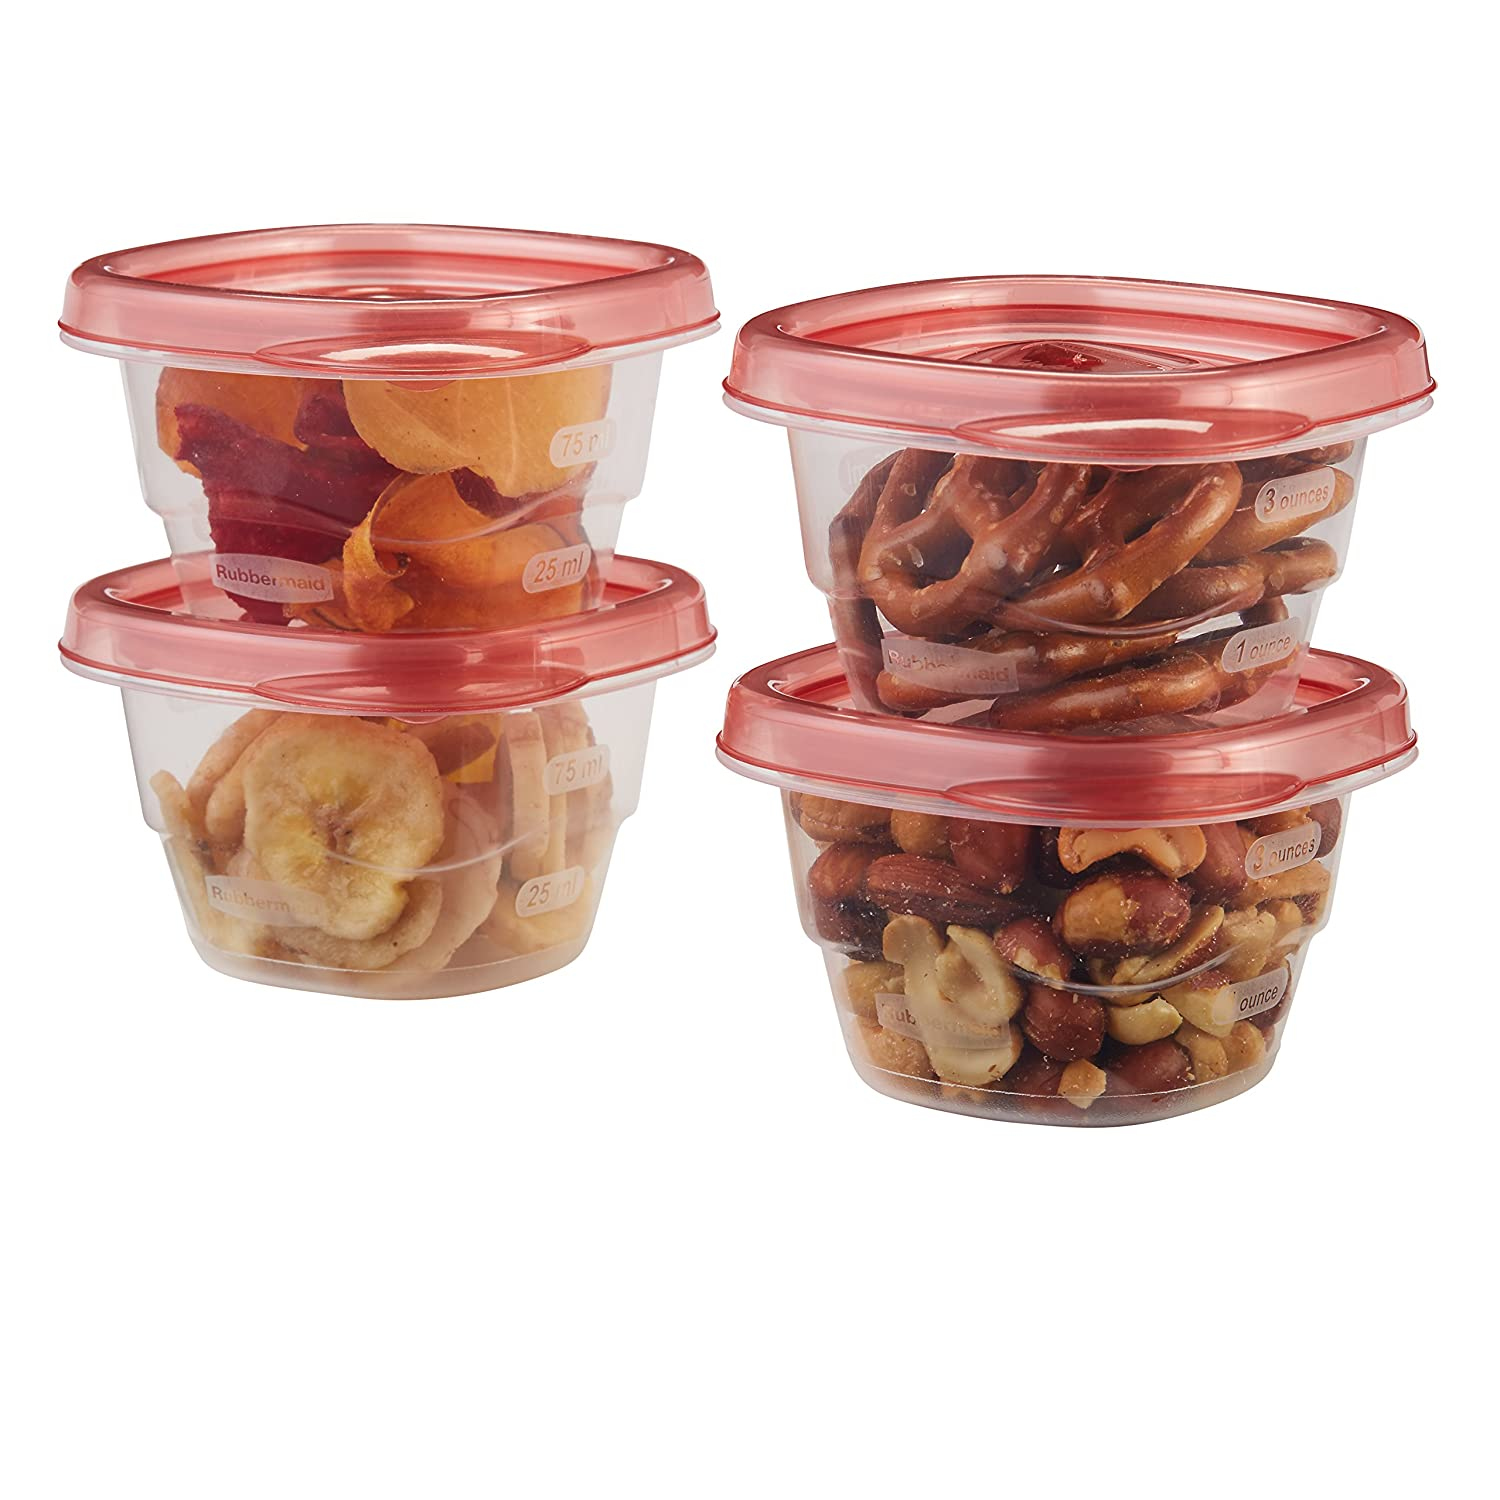 Rubbermaid - 1803522 Mini Food Storage Containers, (0.5 Cup), (6 Pack)